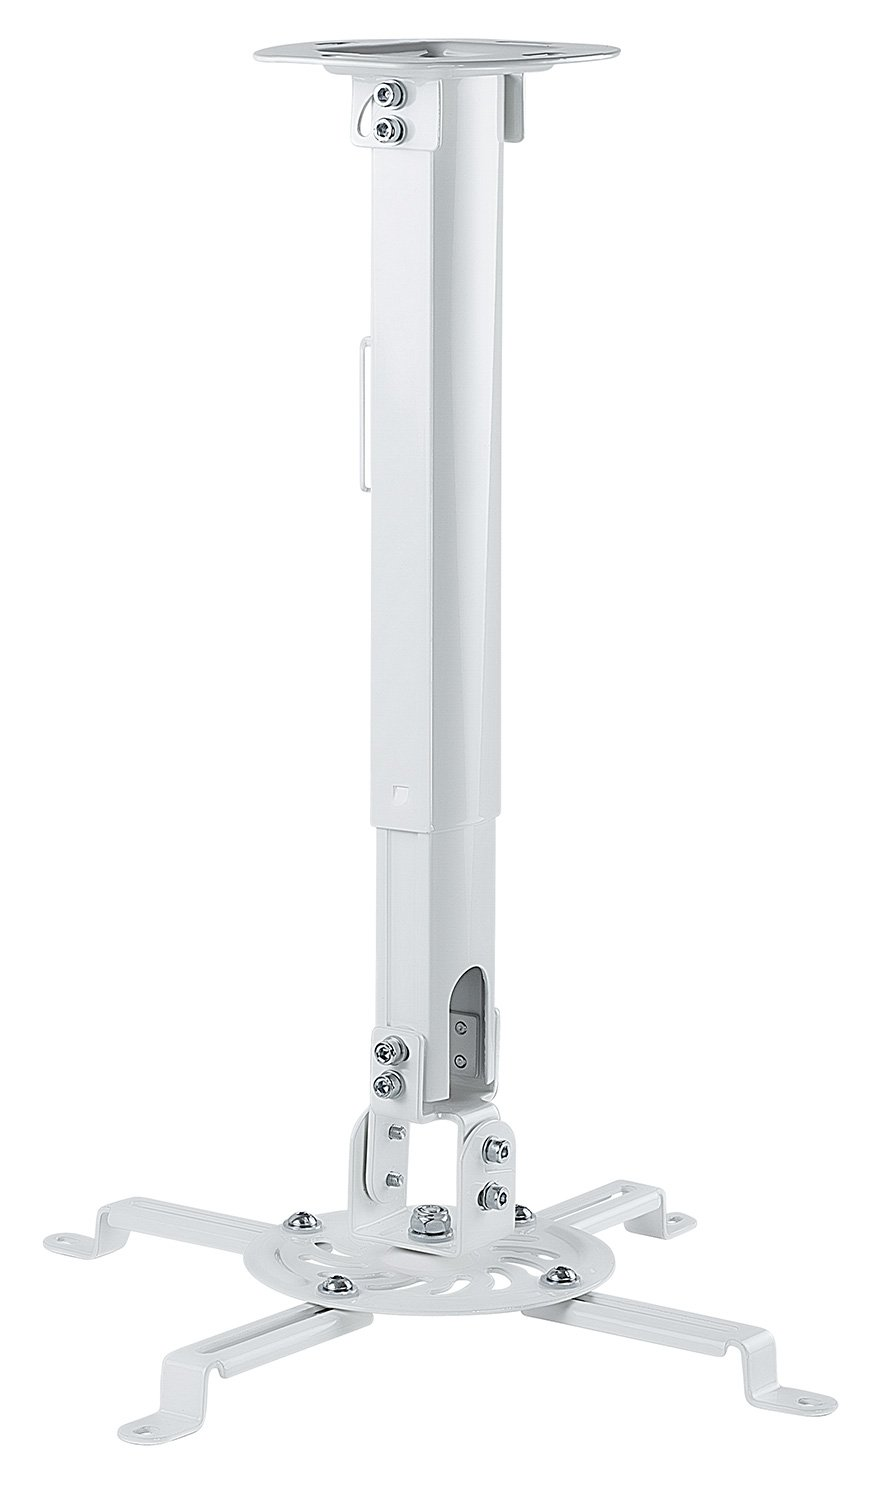 Mount-It! Ceiling Projector Mount Height Adjustable Universal Stand Fits Epson Optoma Benq Viewsonic Projectors, 30 Lbs Capacity (Short) Brateck MI-606S